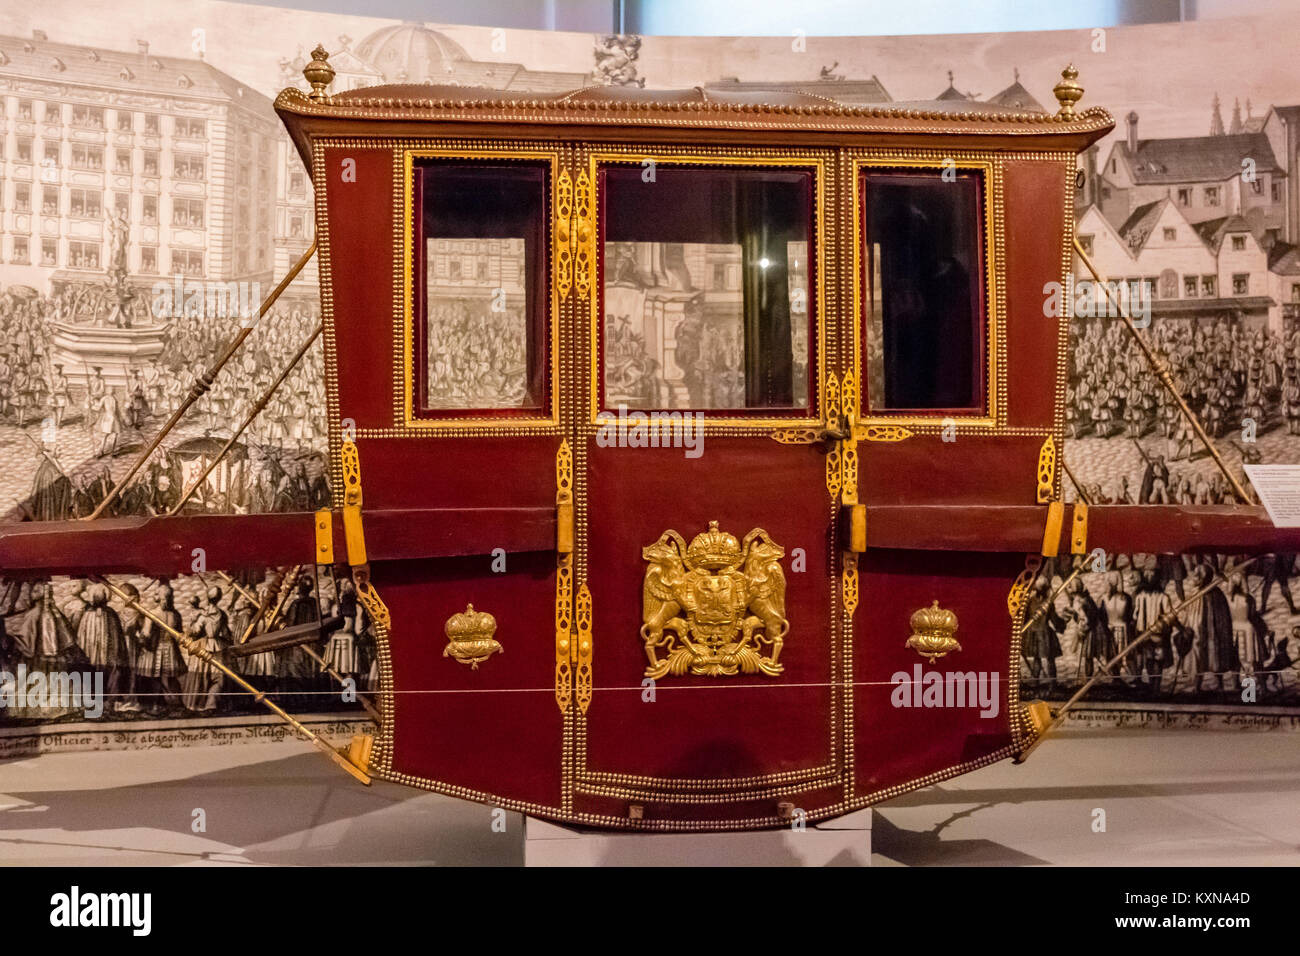 Sedan chair used by the Habsburg  Monarchy,  Imperial Carriage Museum, Schönbrunn, Vienna, Austria, Europe - Stock Image